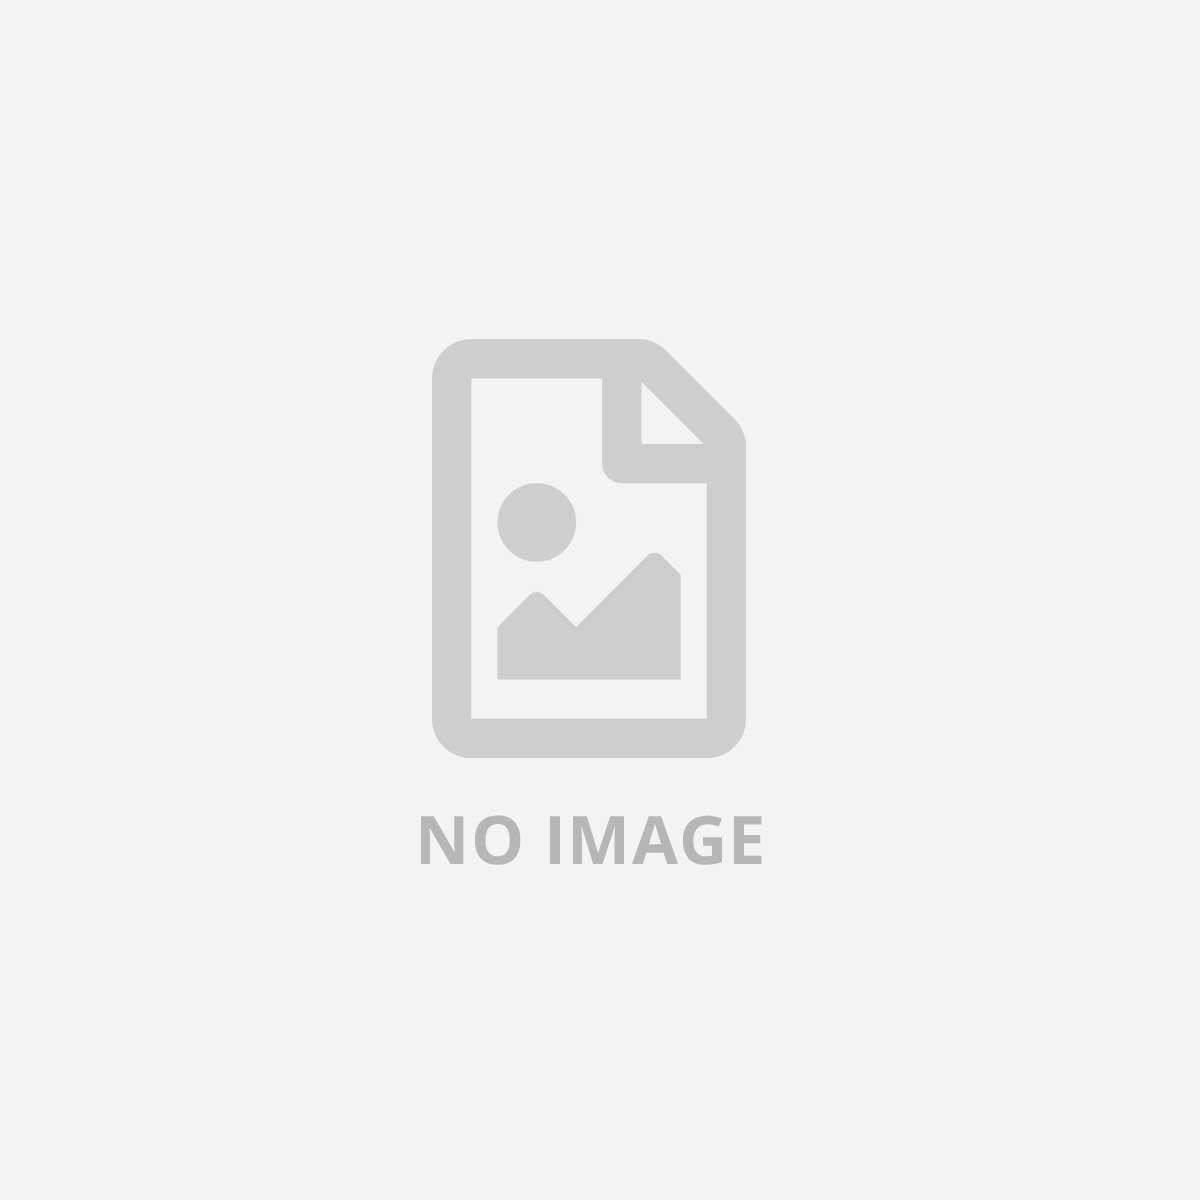 EXPONENT WORLD LCD MONITOR STAND